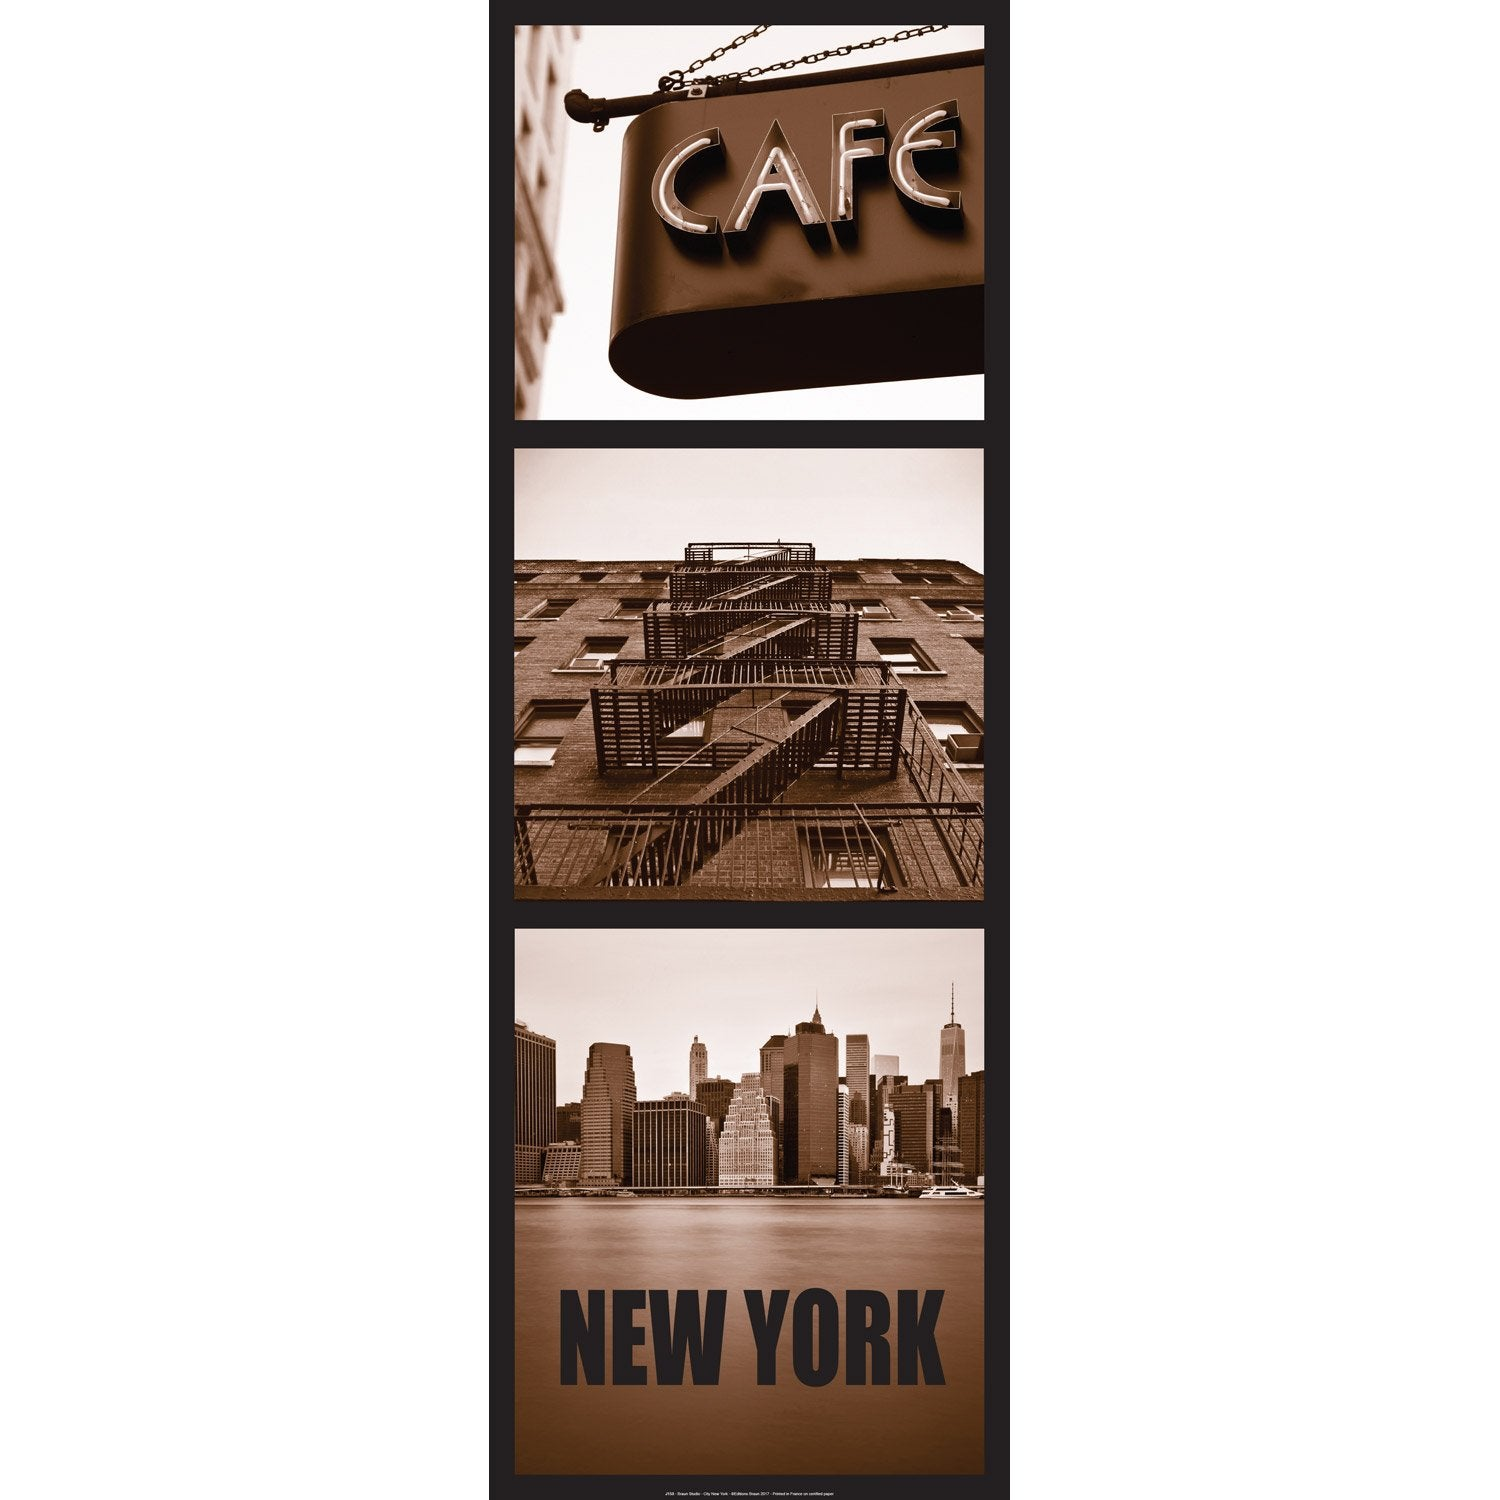 Affiche  new york city l.96 x H.35 cm